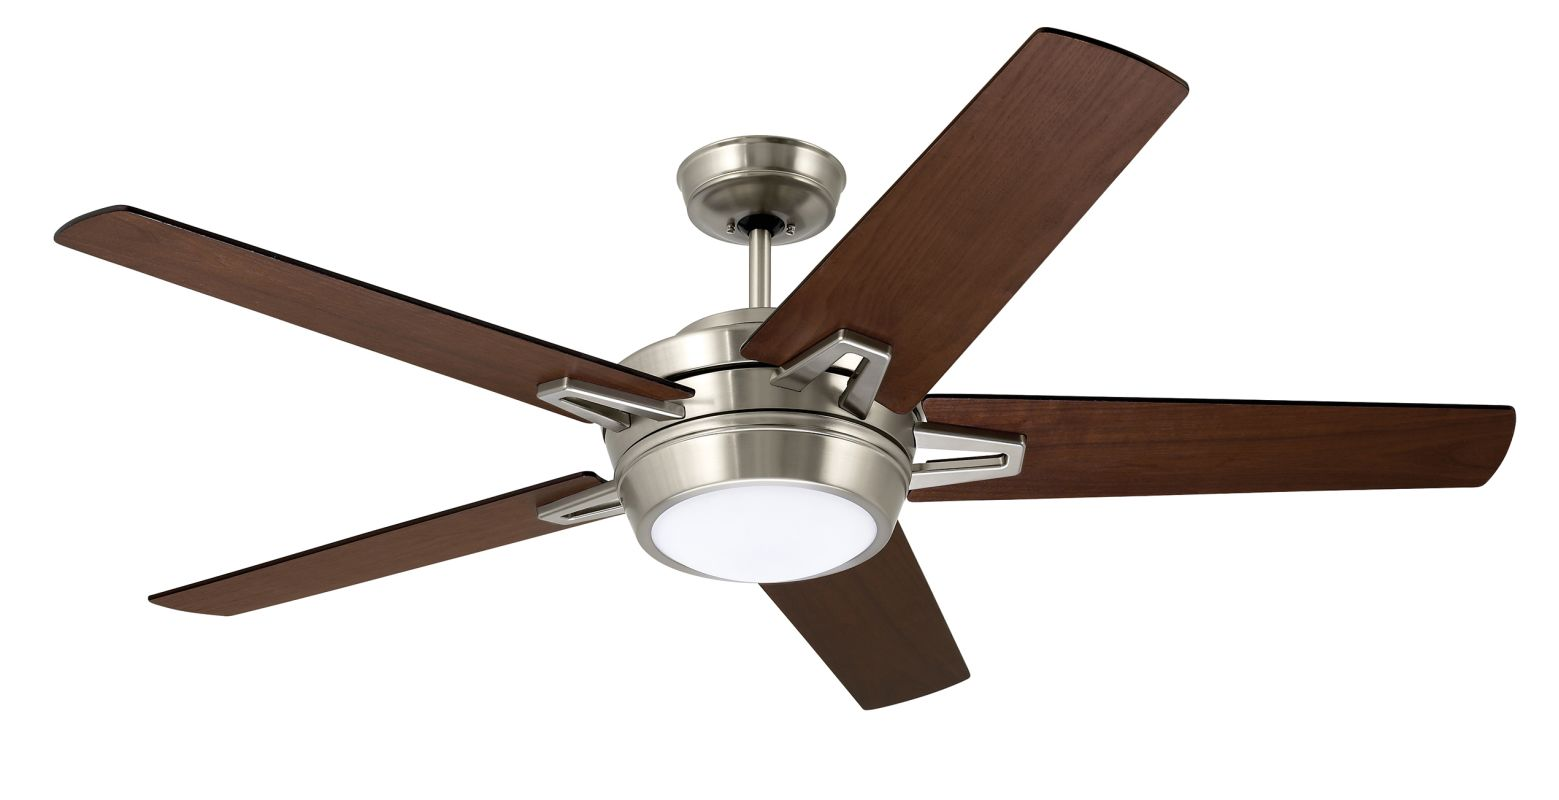 "Emerson CF4900 Southtowne 54"" 5 Blade Ceiling Fan - Blades and Light"